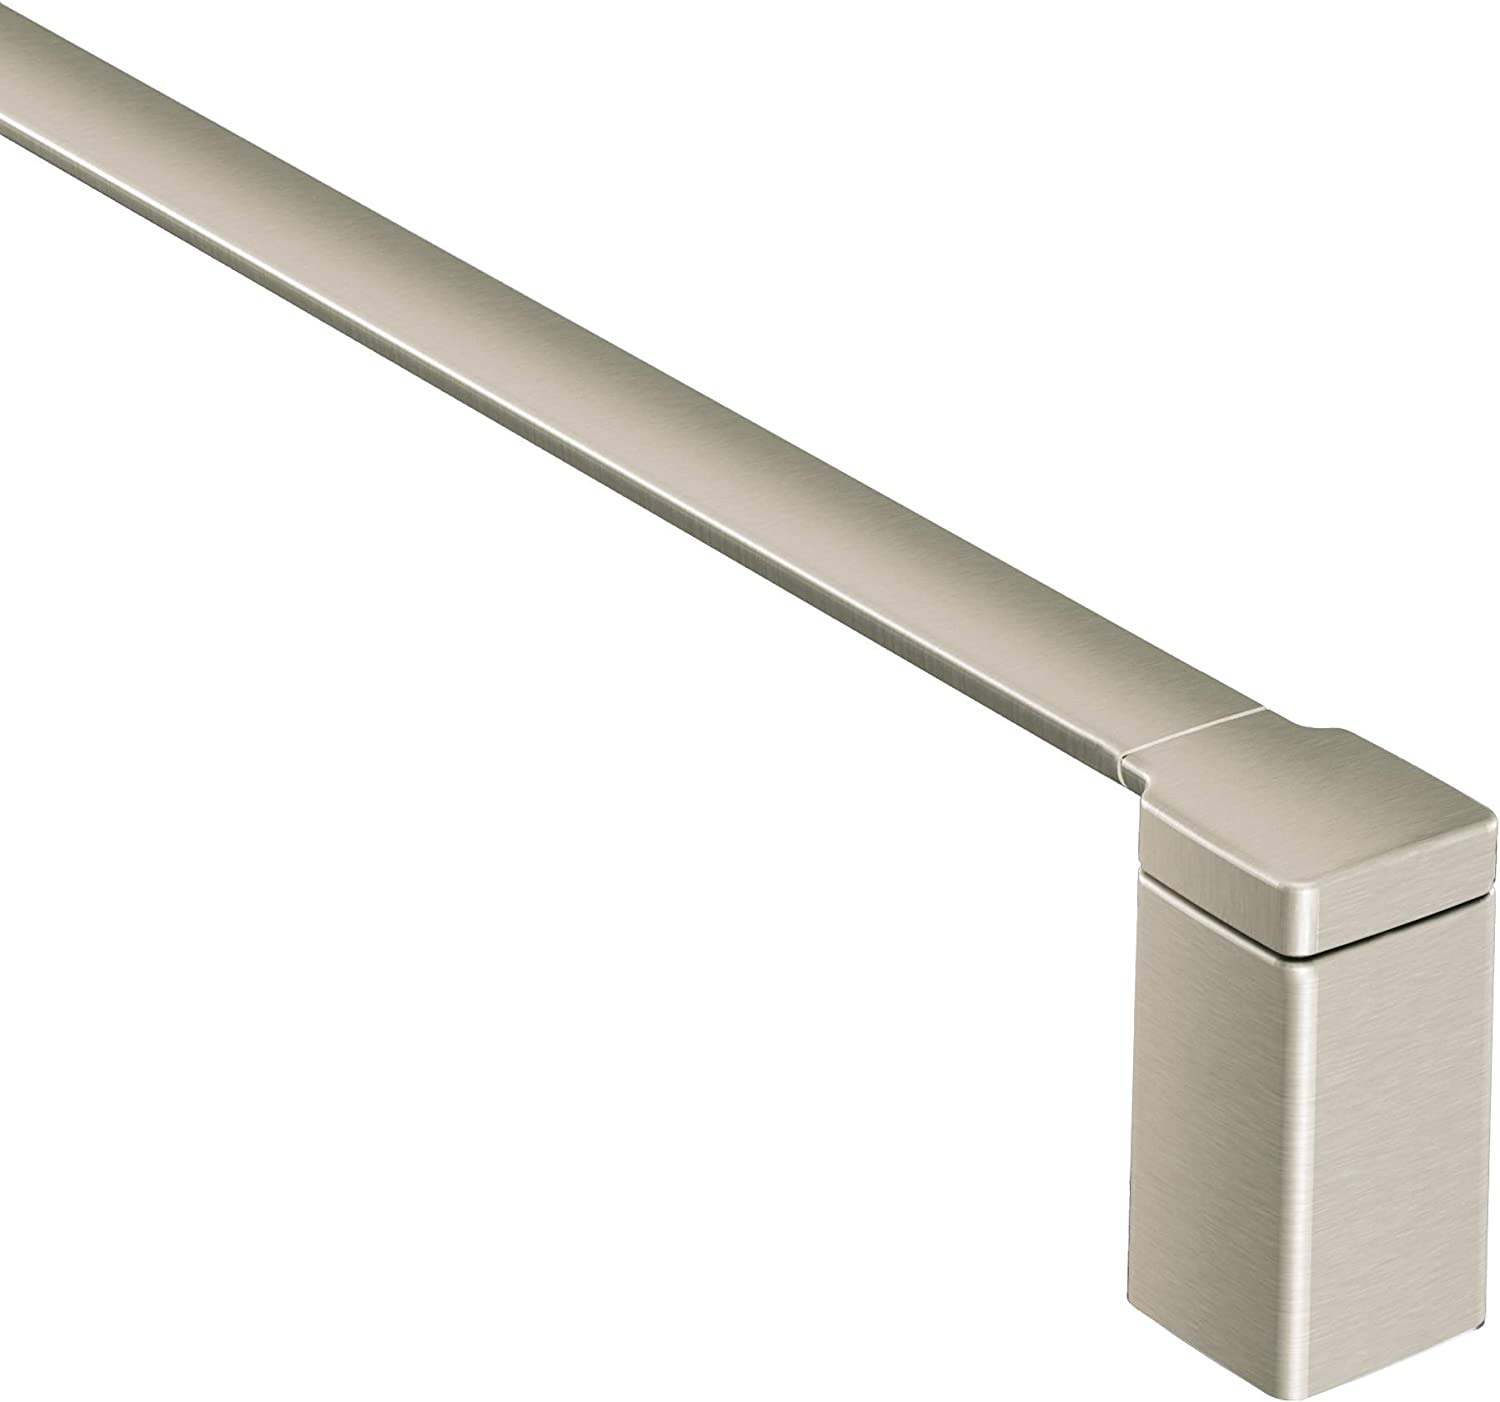 Moen YB8824BN 90 Degree 24-Inch Bathroom Towel Bar, Brushed Nickel